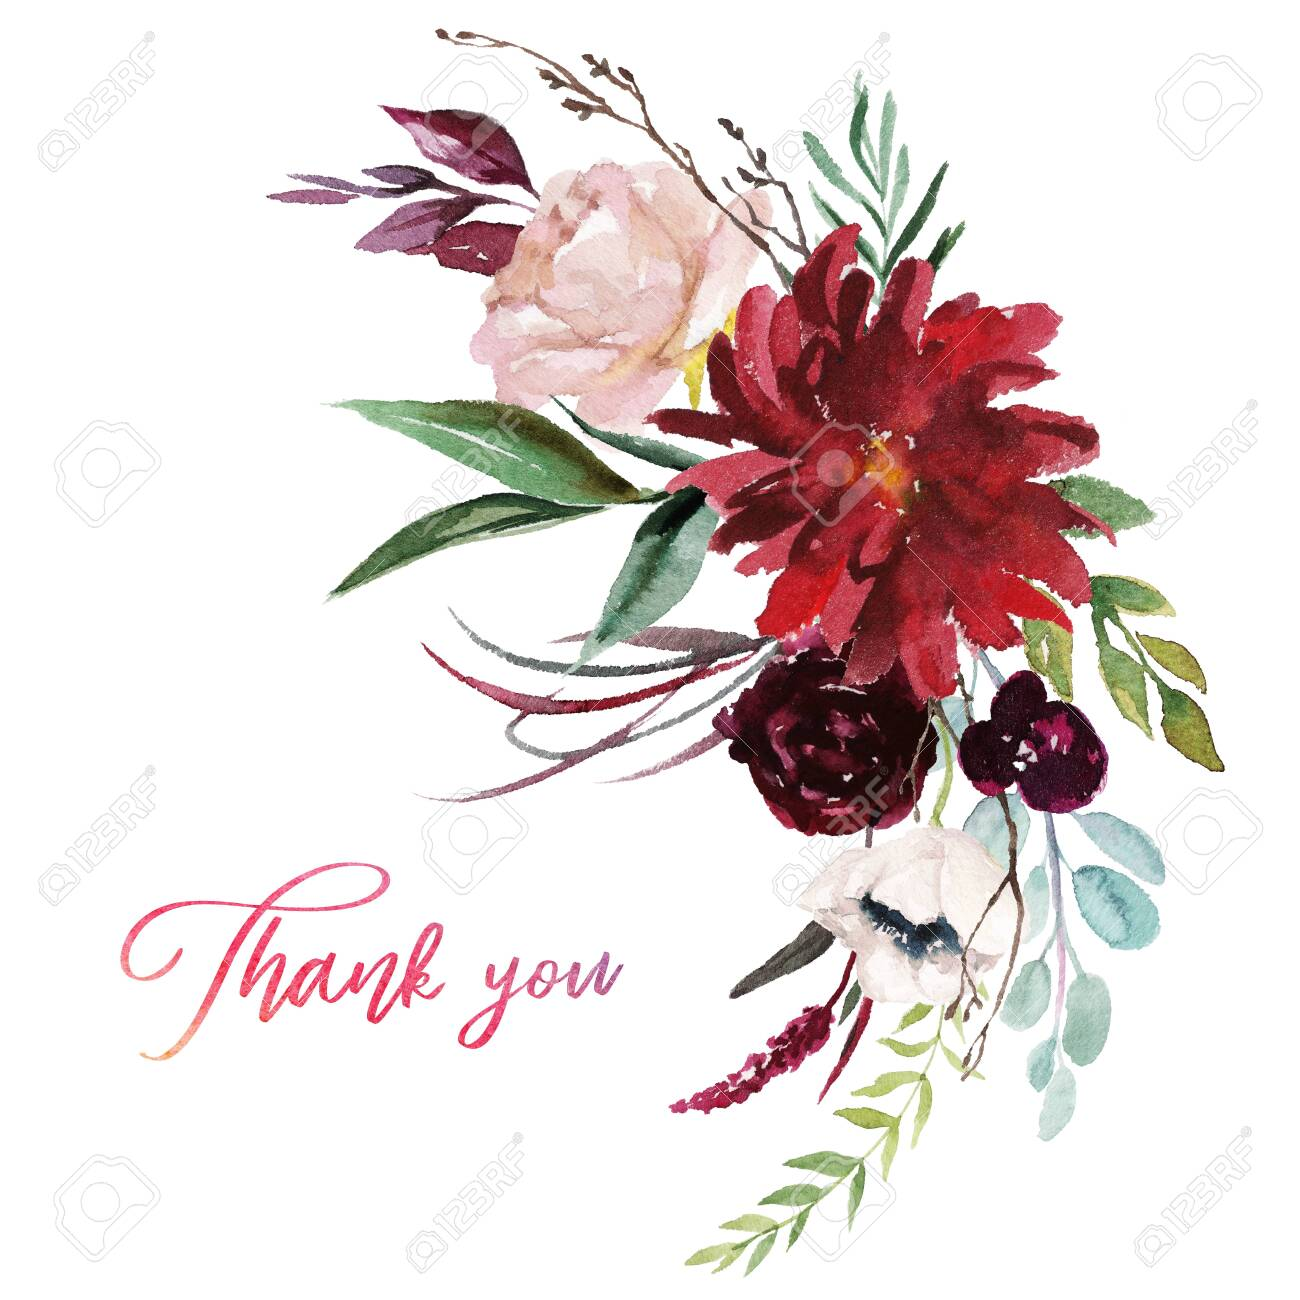 Watercolor Floral Illustration Flowers Burgundy Bouquet For Stock Photo Picture And Royalty Free Image Image 140949965